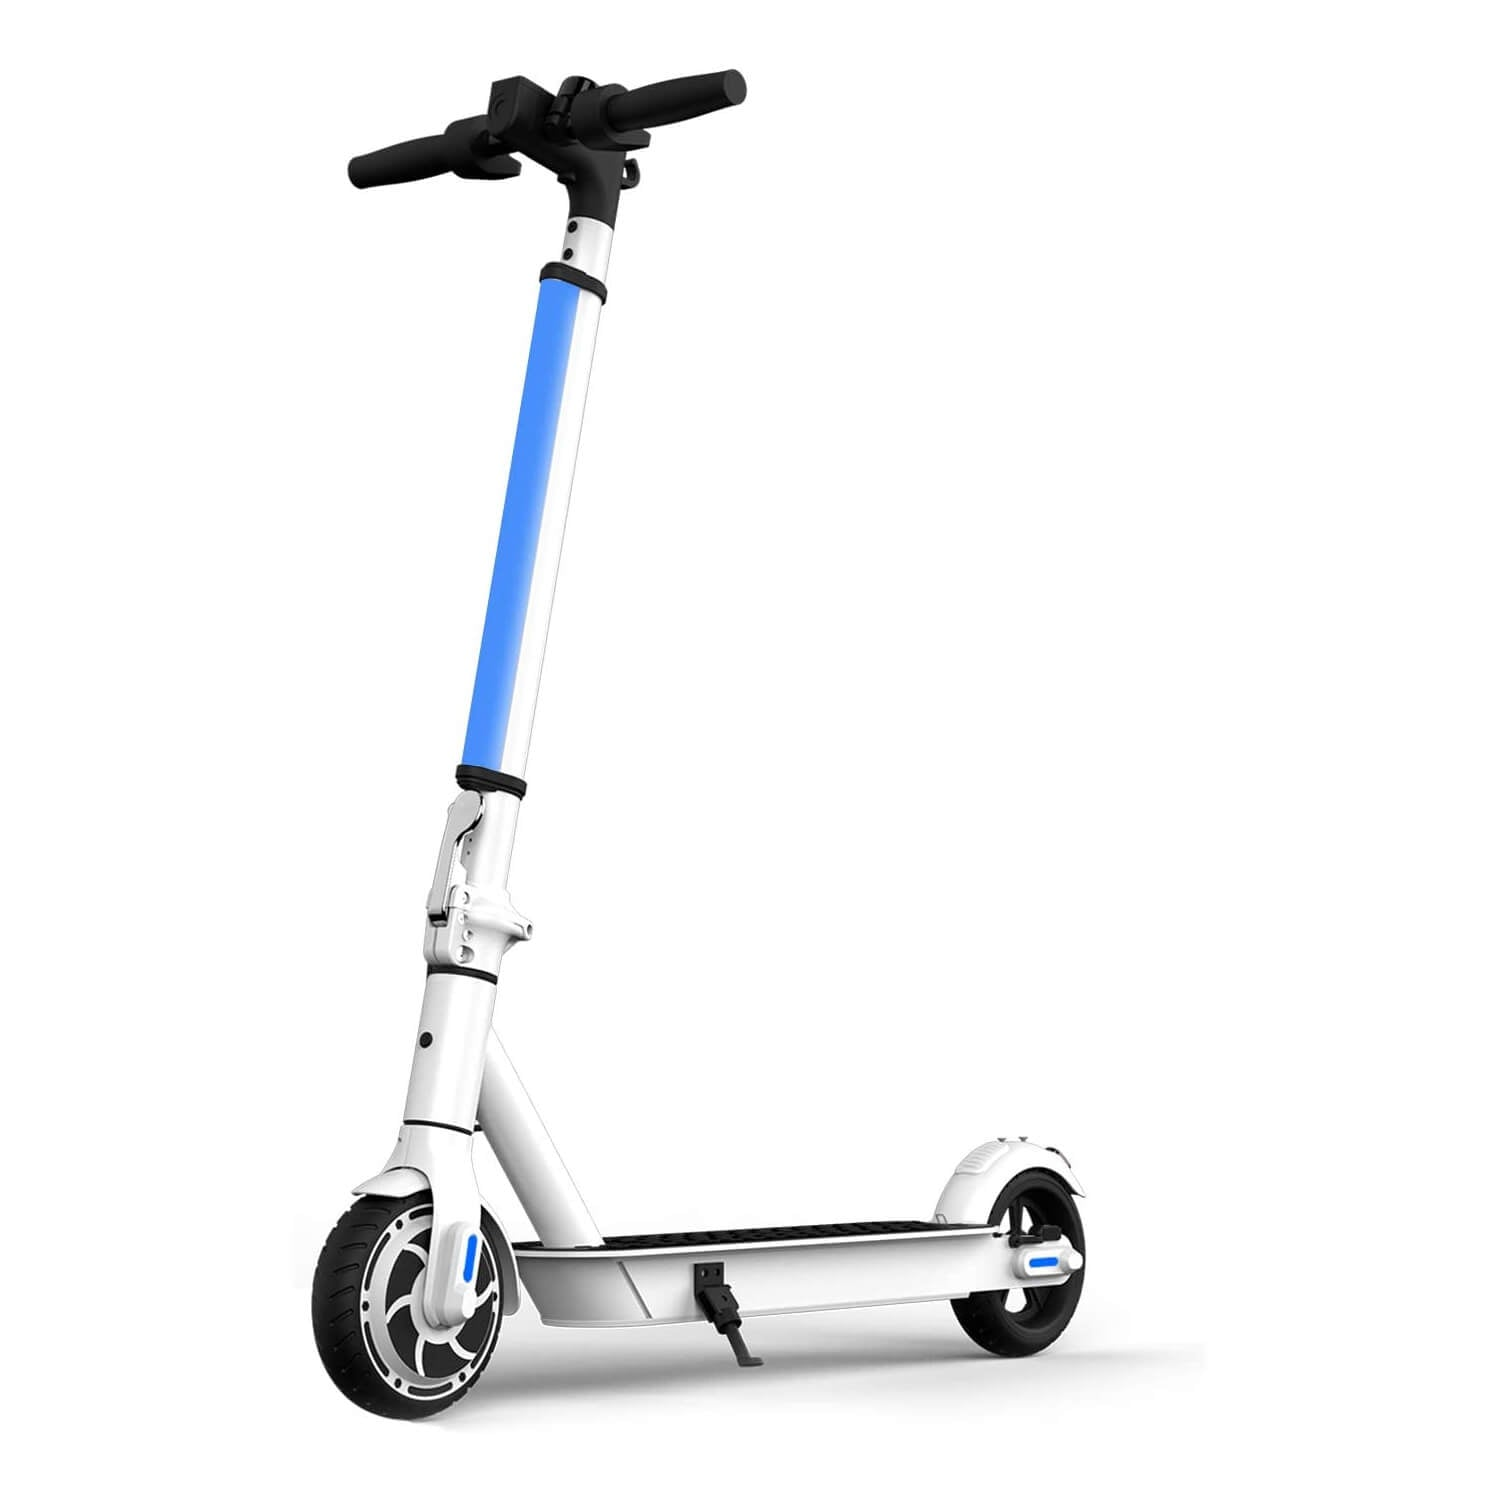 Hiboy S2 Lite Electric Scooter For Kids